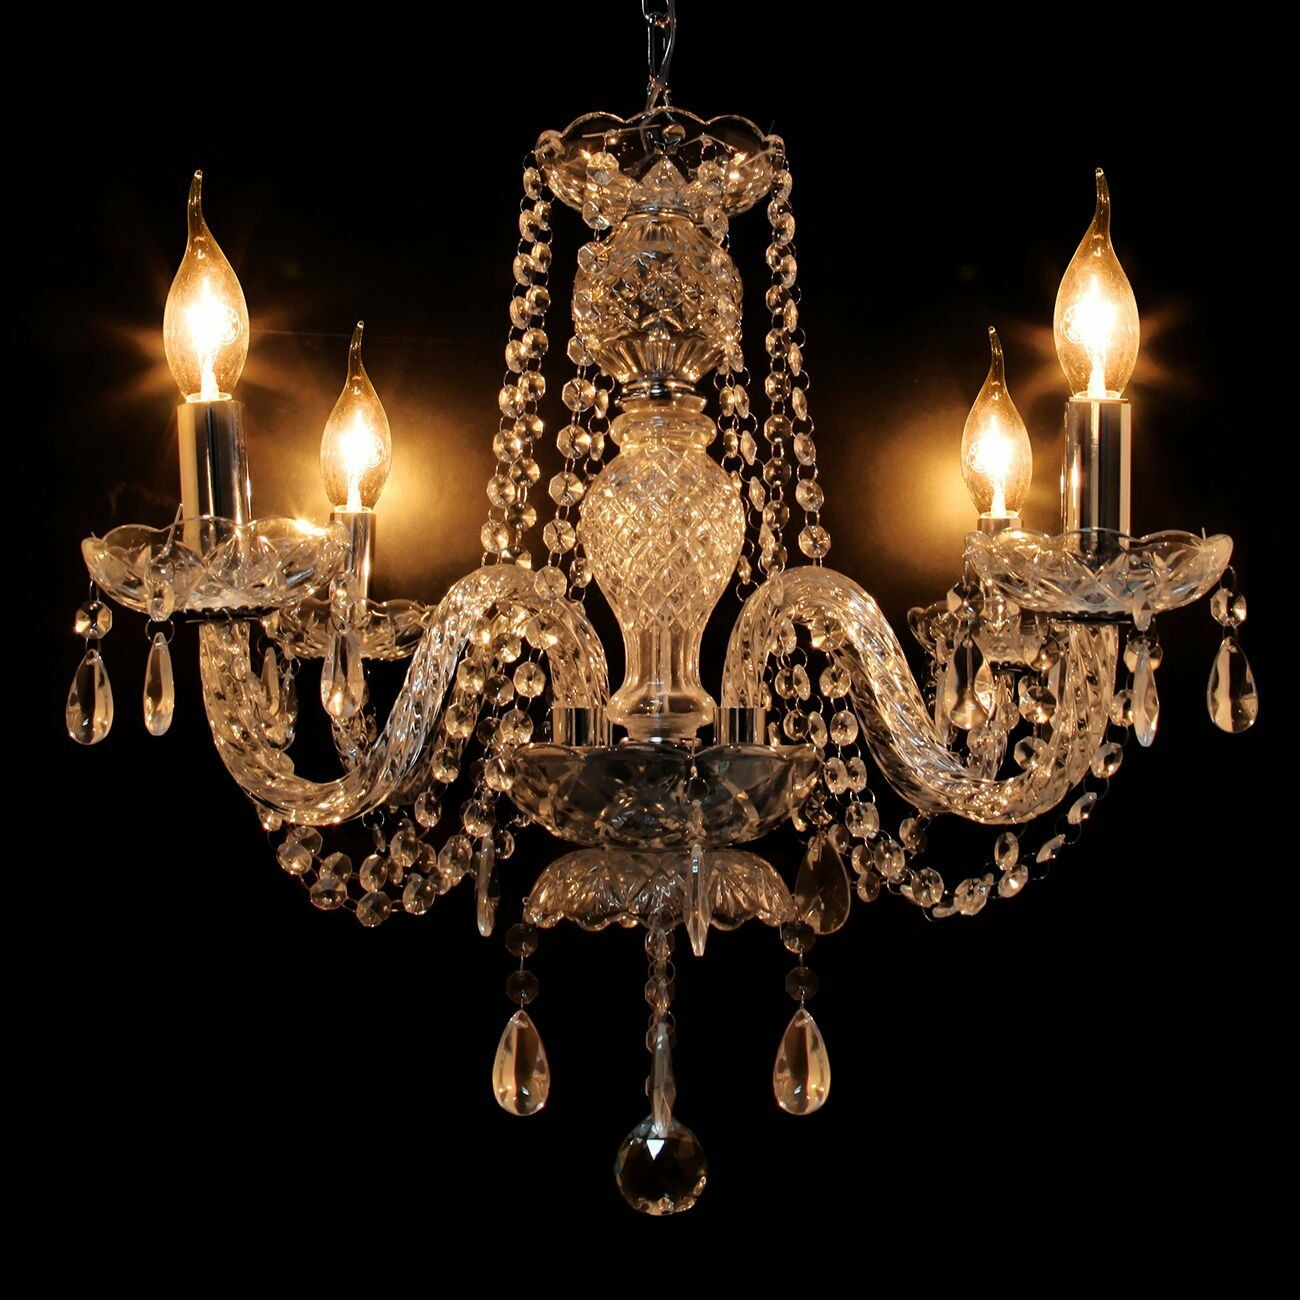 Elegant crystal chandelier modern ceiling light 4 lamp pendant picture 1 of 8 arubaitofo Choice Image